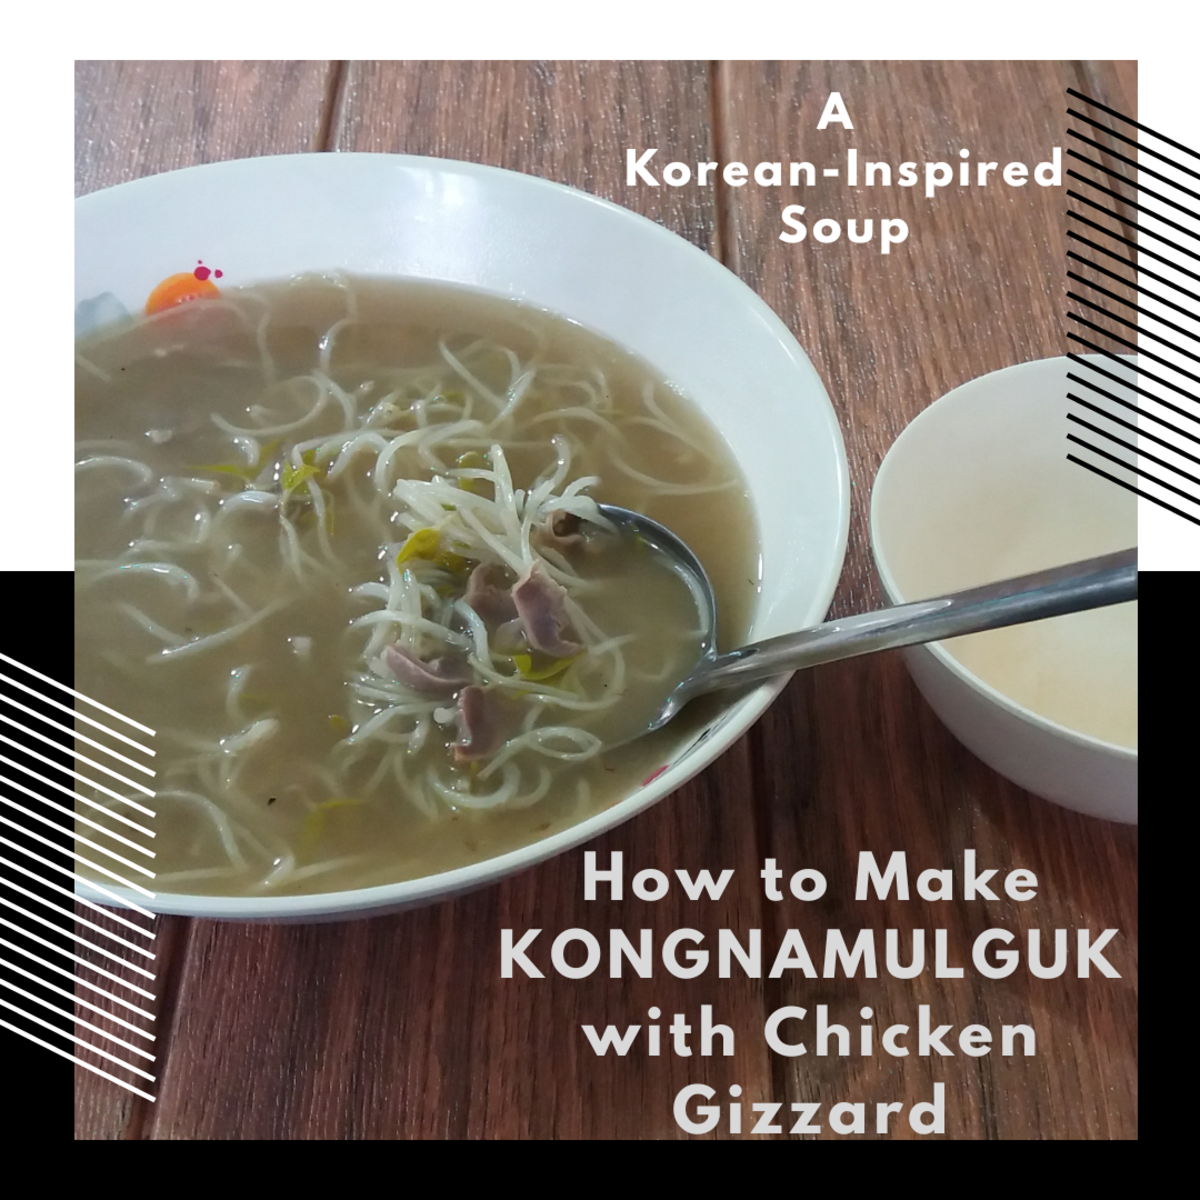 Kongnamulguk With Chicken Gizzards: A Korean-Inspired Soup